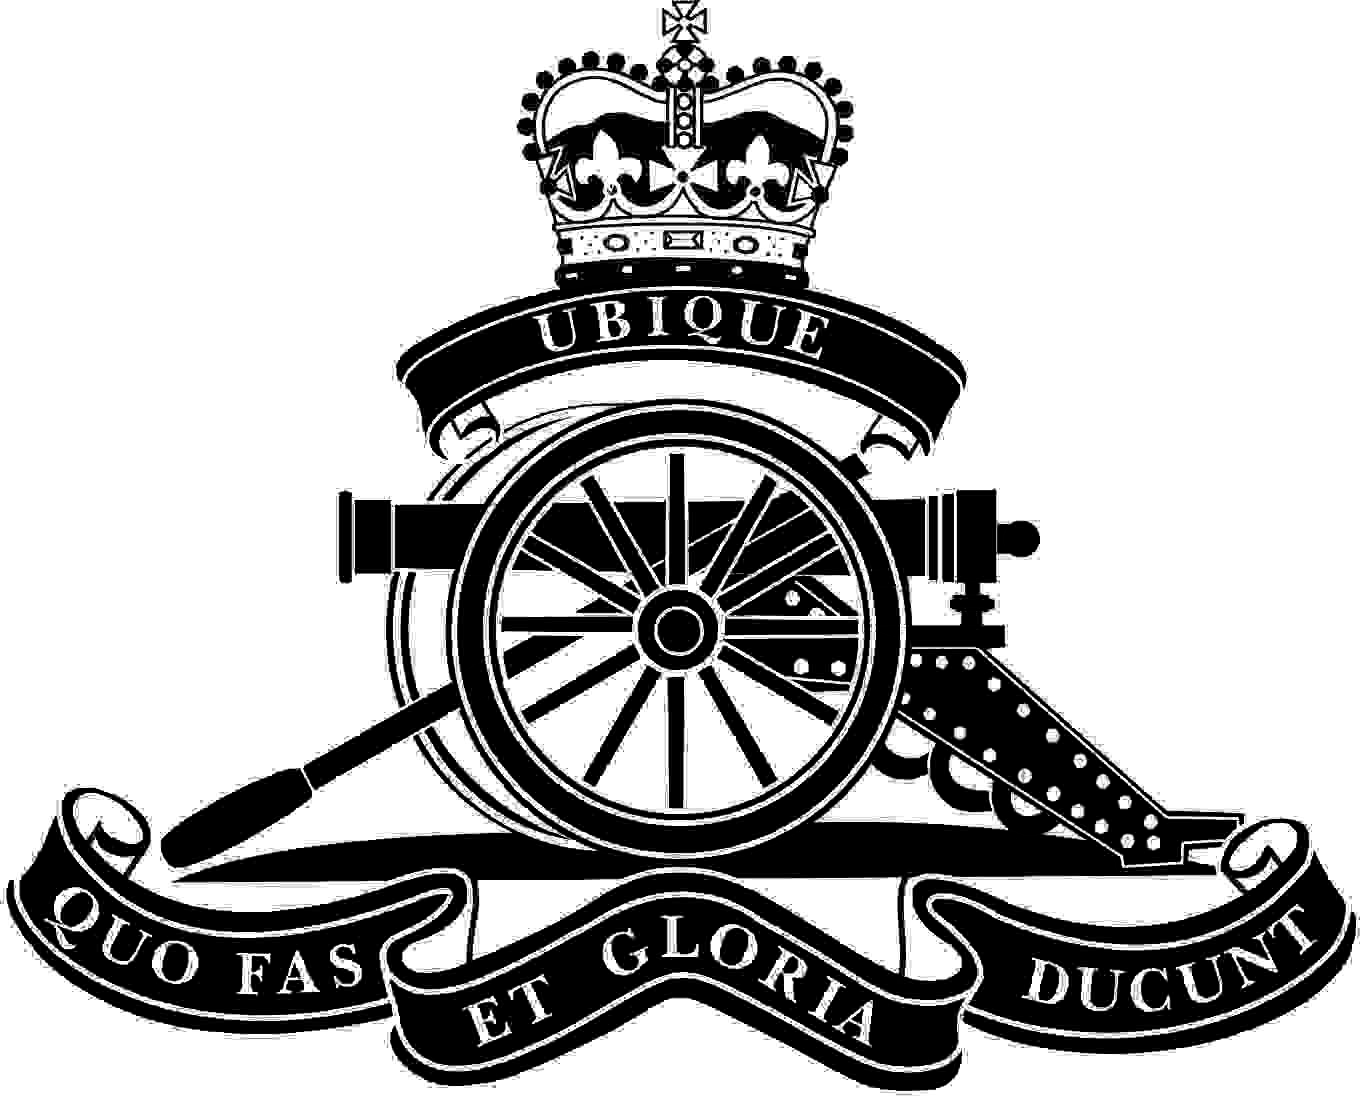 The badge of the badge of the Royal Artillery. Please note